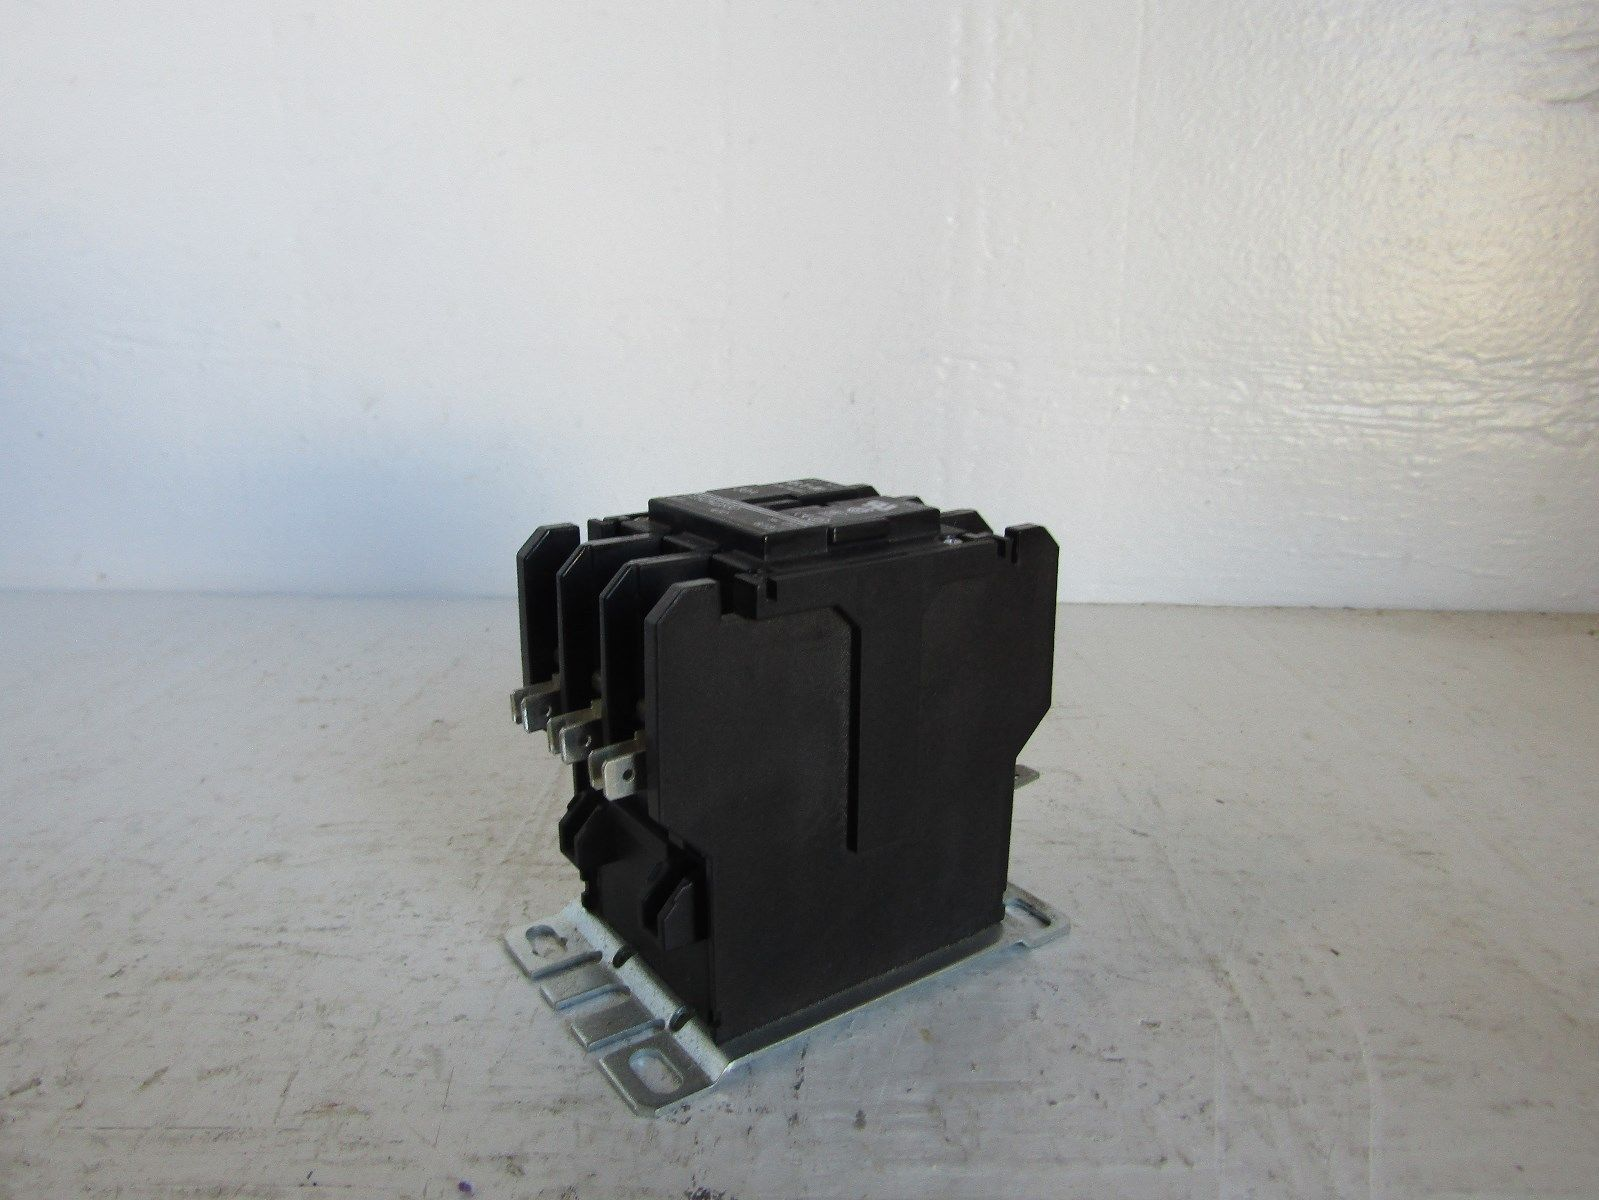 CUTLER HAMMER C25DND330 30 AMP 3 POLE CONTACTOR 120 VOLT COIL 331989252131 2?fit\=1000%2C750\&ssl\=1 c25dnd330 wiring diagram 3 phase contactor wiring diagram start Eaton C25dnf340 Contactor at couponss.co